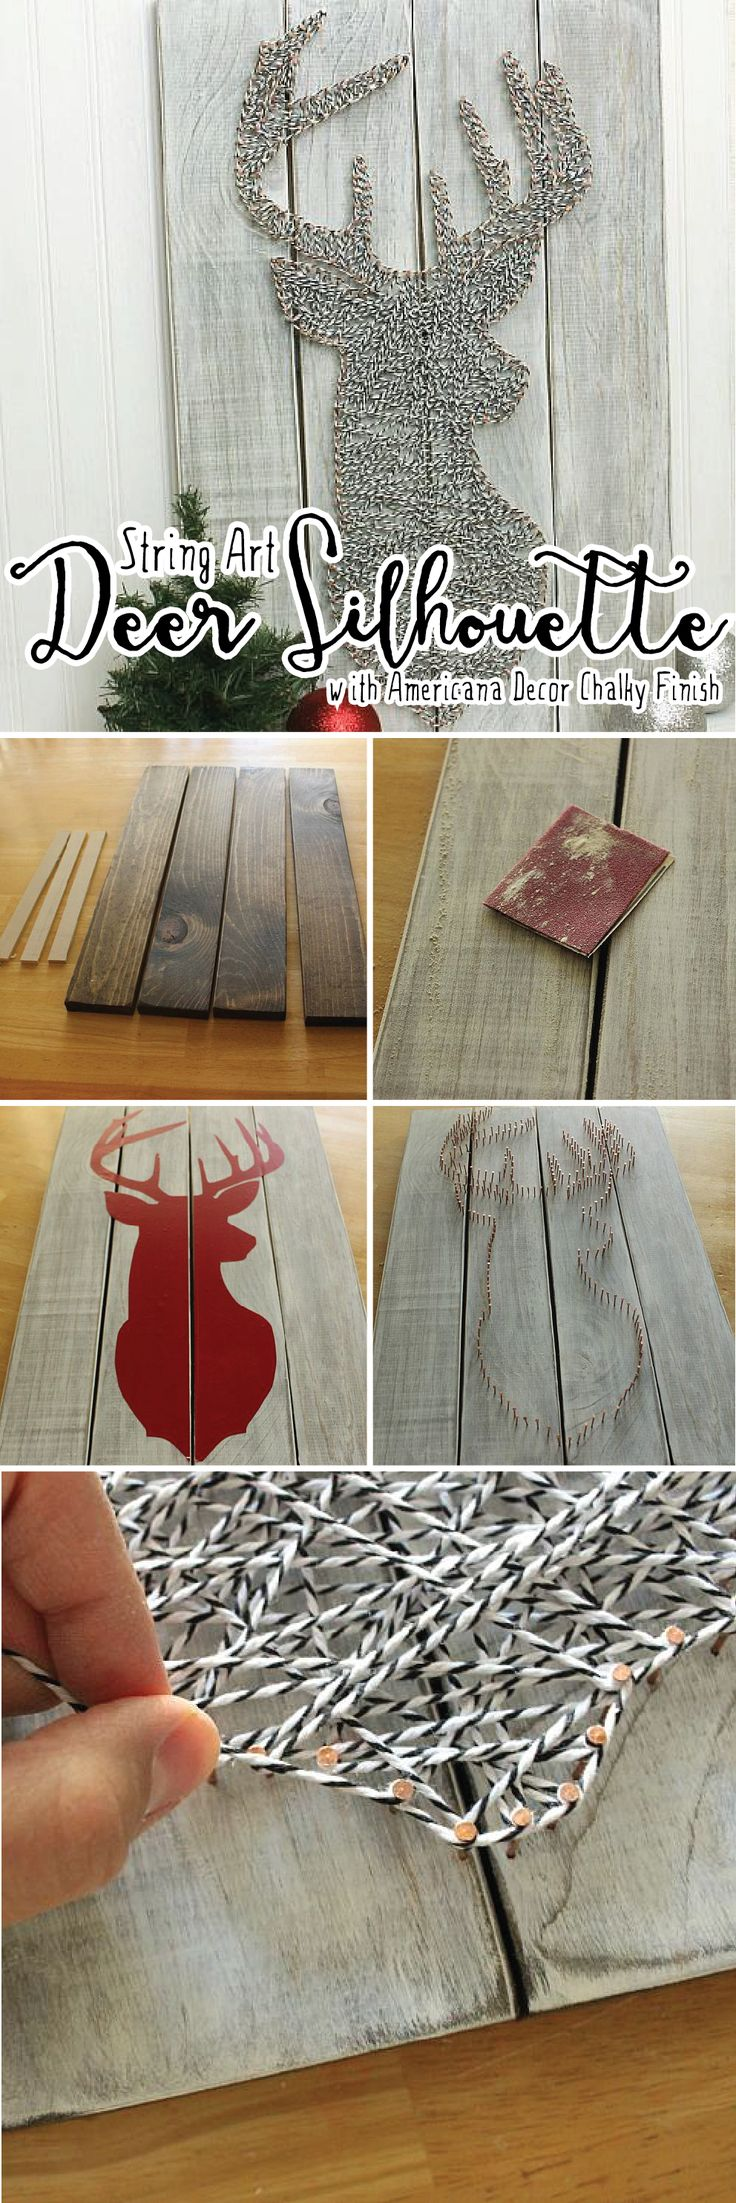 With just some baker's twine your @silhouettepins machine and Americana Decor Chalky Finish you can create this gorgeous deer head silhouette (cut file included). #DecoArtProjects #ChalkyFinish #AmericanaDecor #Silhouette